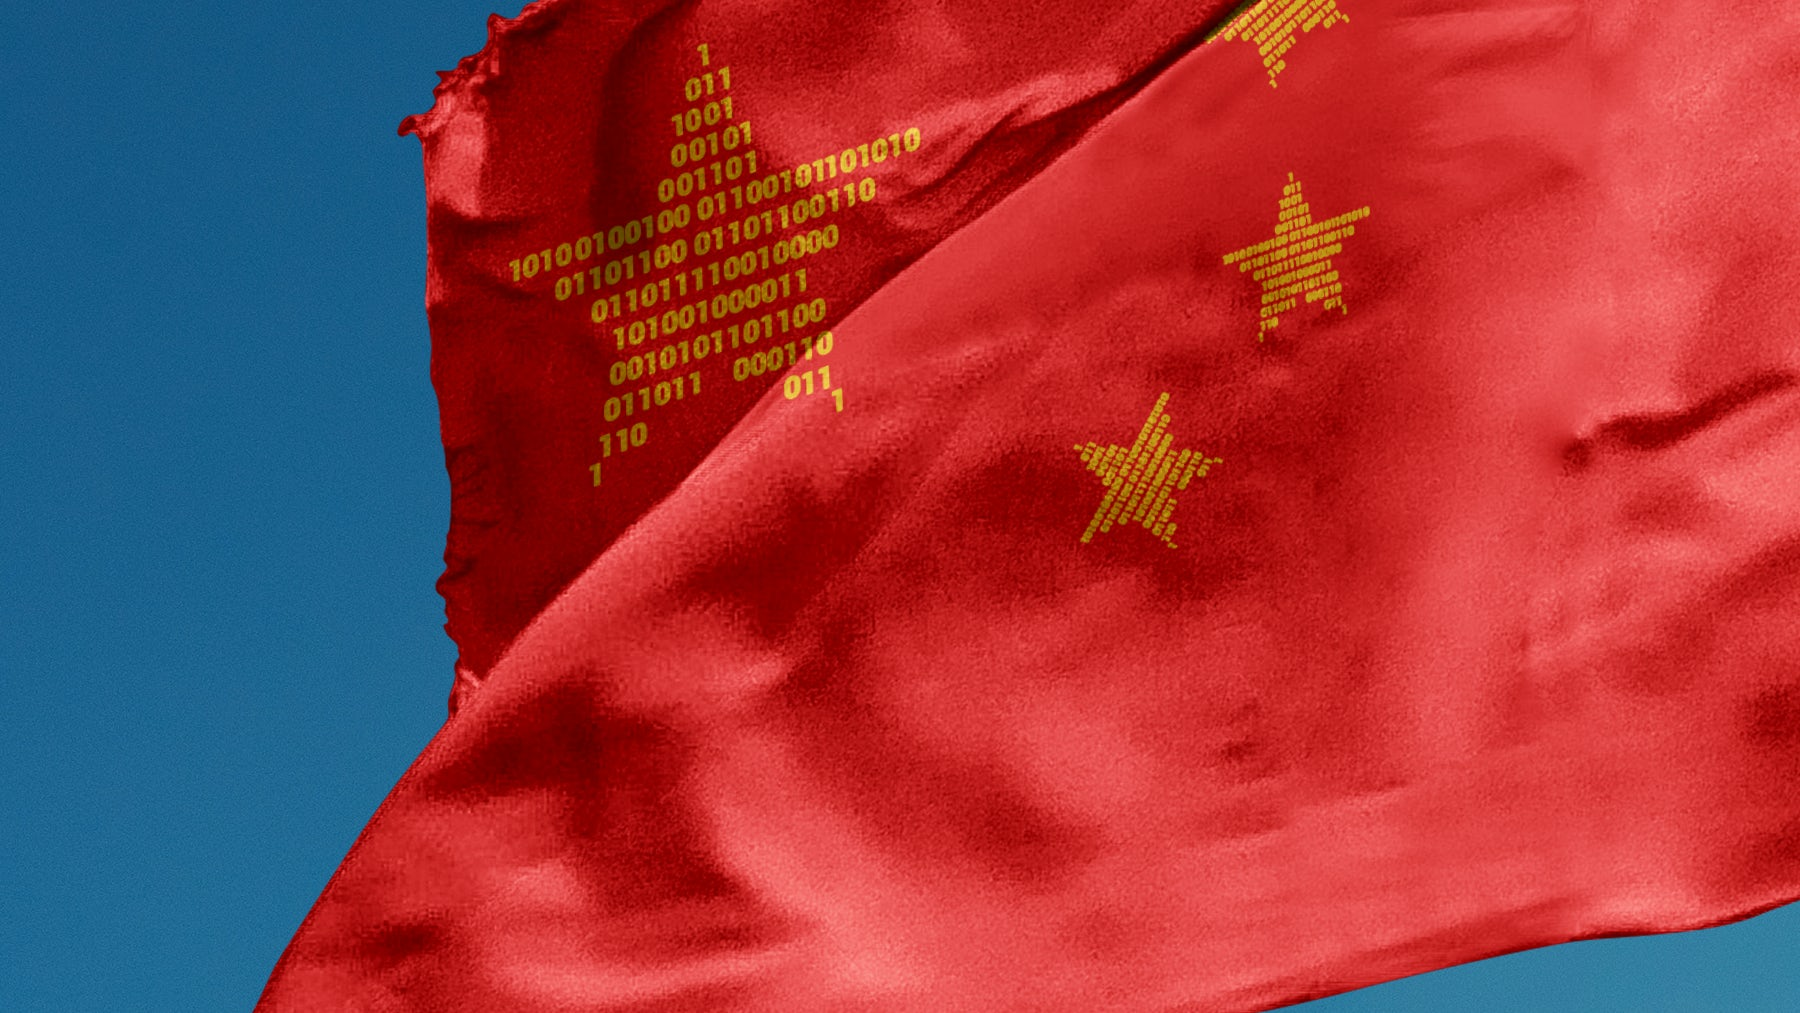 Chinese technology flag | Photo by Chelsea Carpenter